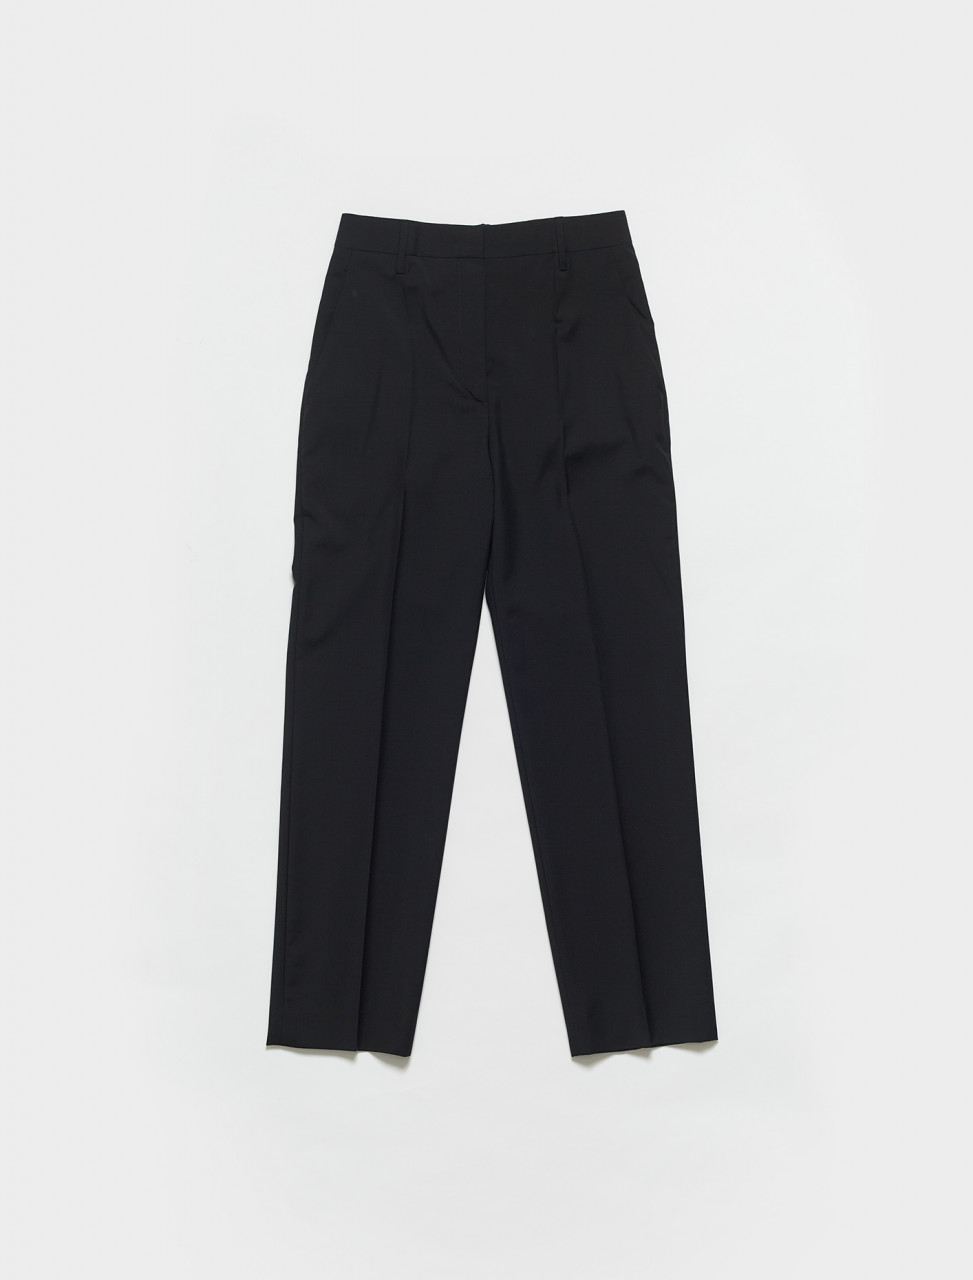 P288D-F0002 PRADA PRINTED TROUSER IN BLACK